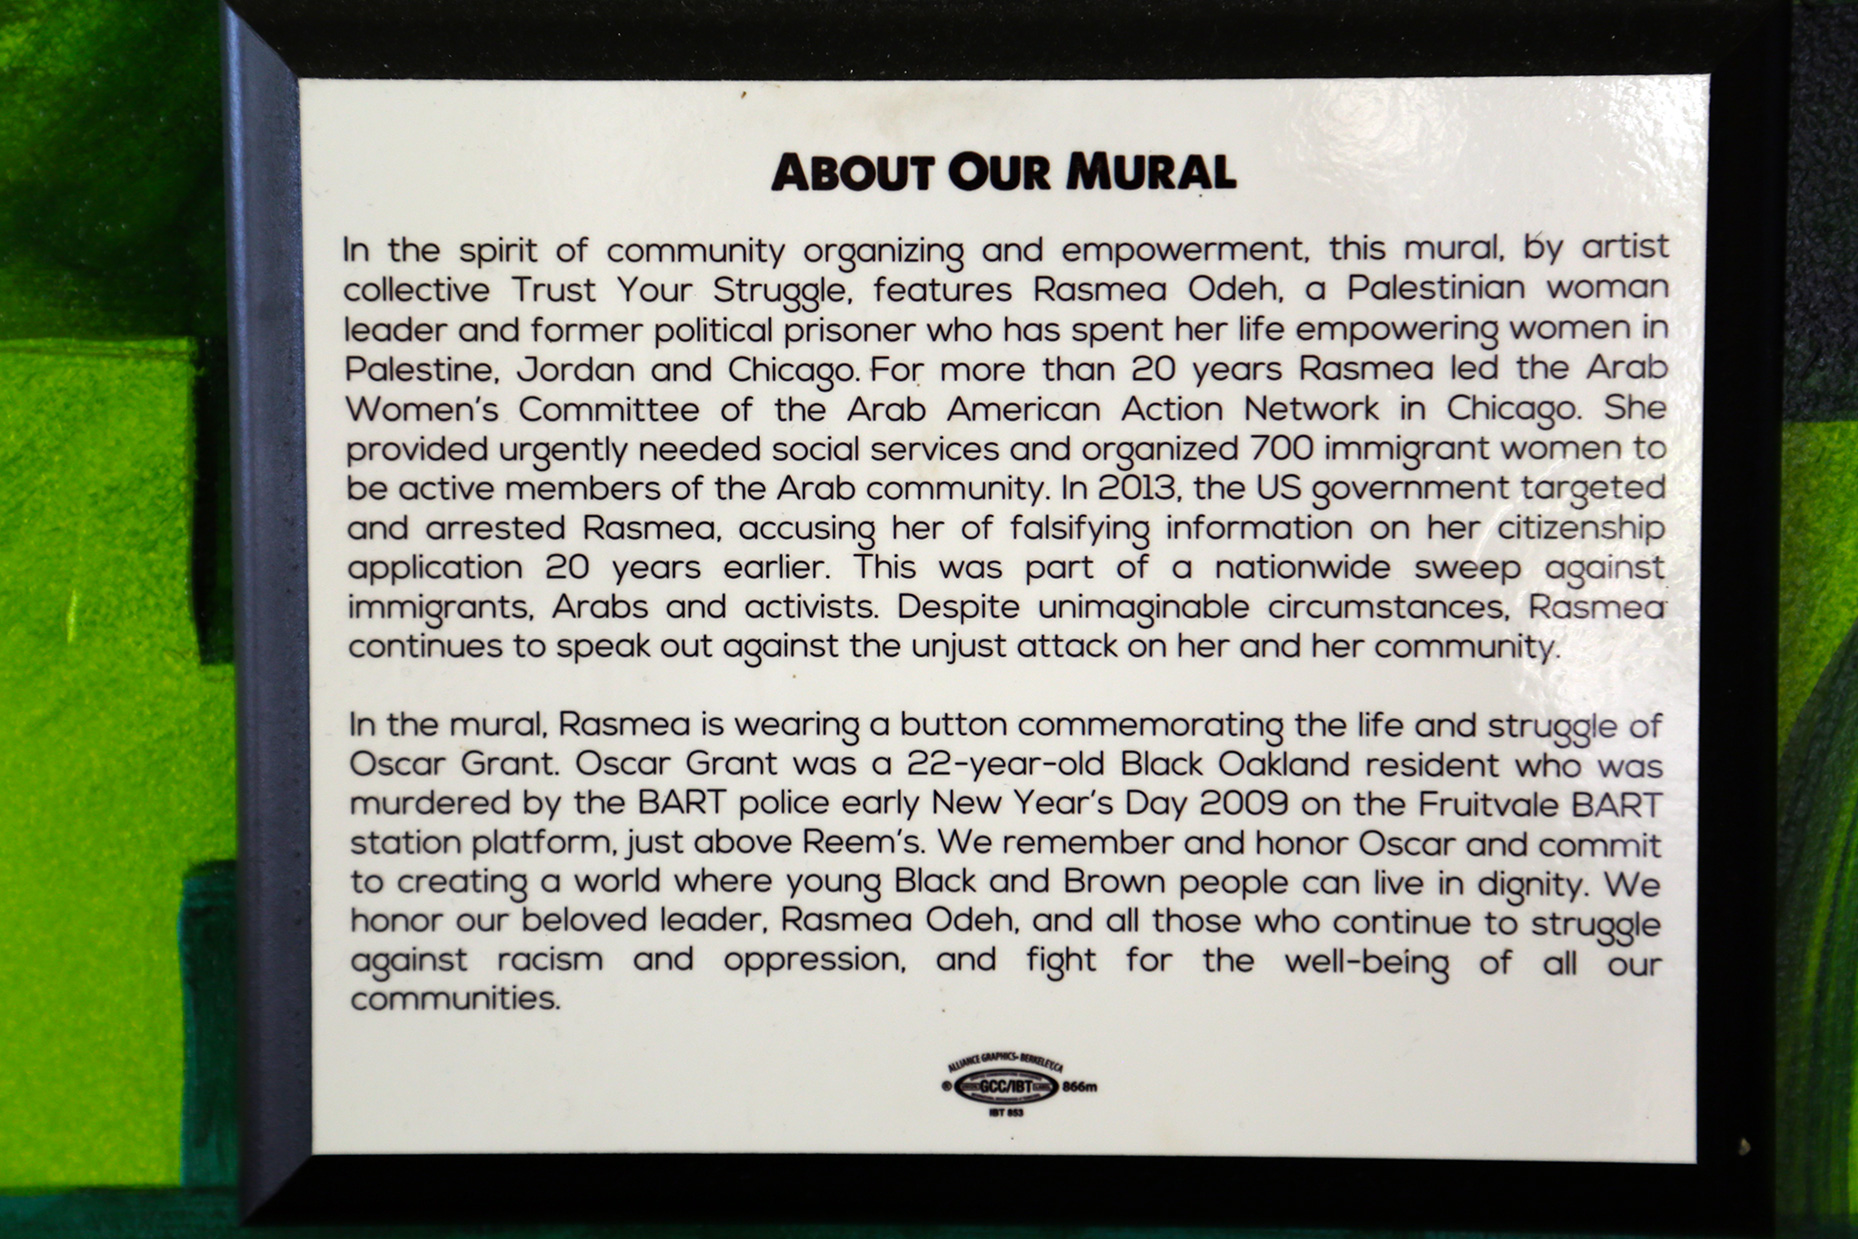 Statement about the mural.